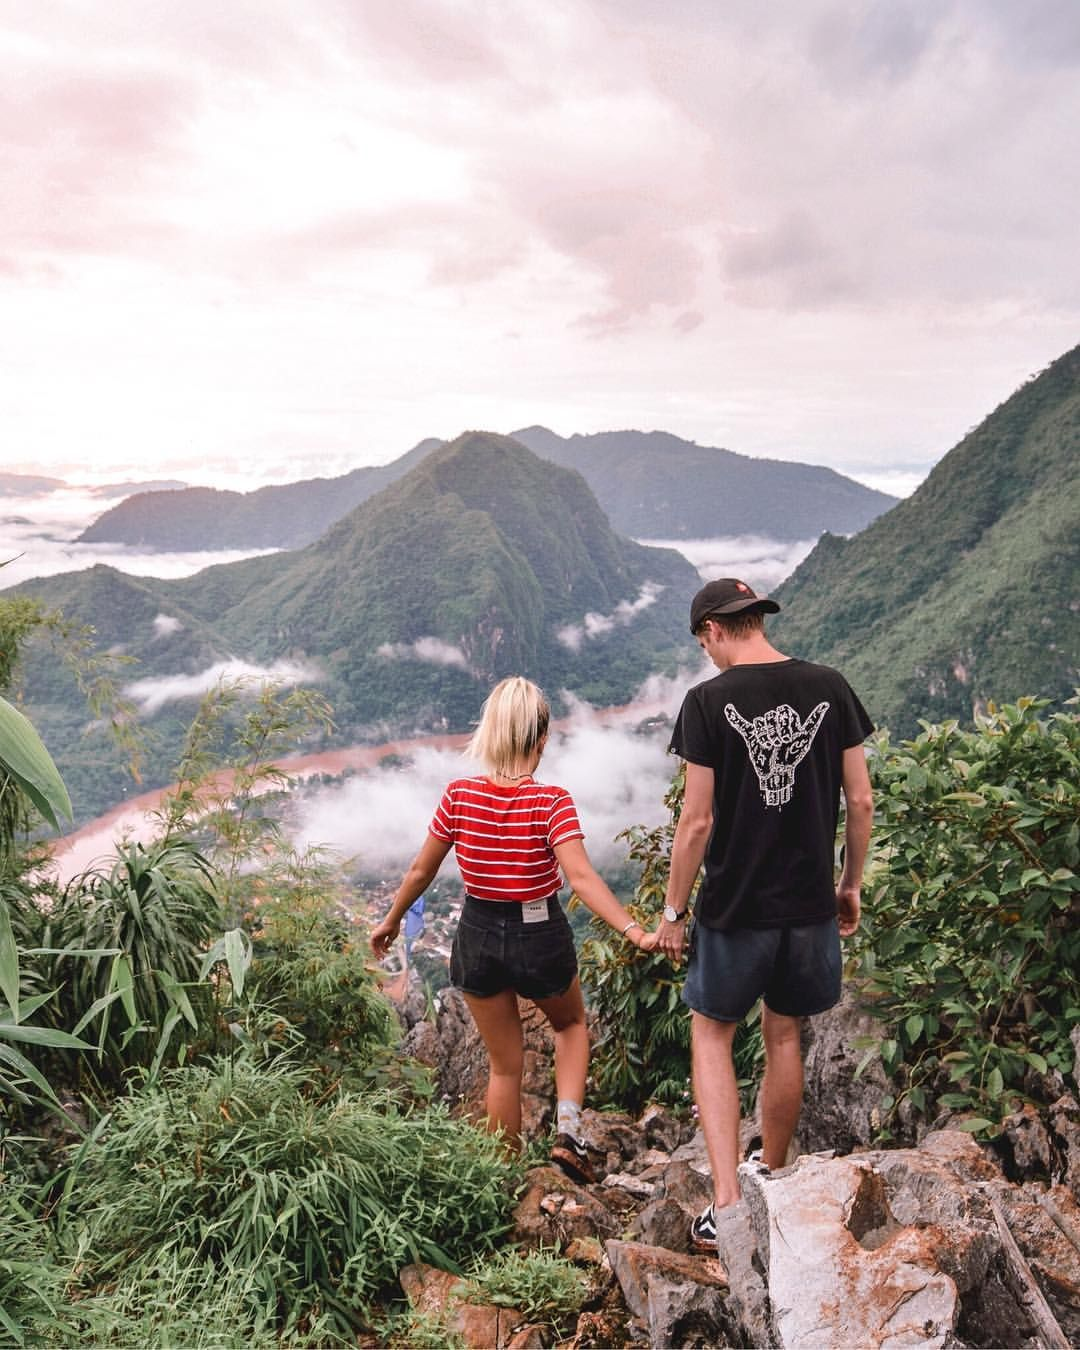 Nong Khiaw Viewpoint Laos South East Asia - Wanderers & Warriors Charlie & Lauren UK Travel Couple - Hiking - Climbing - Together Always